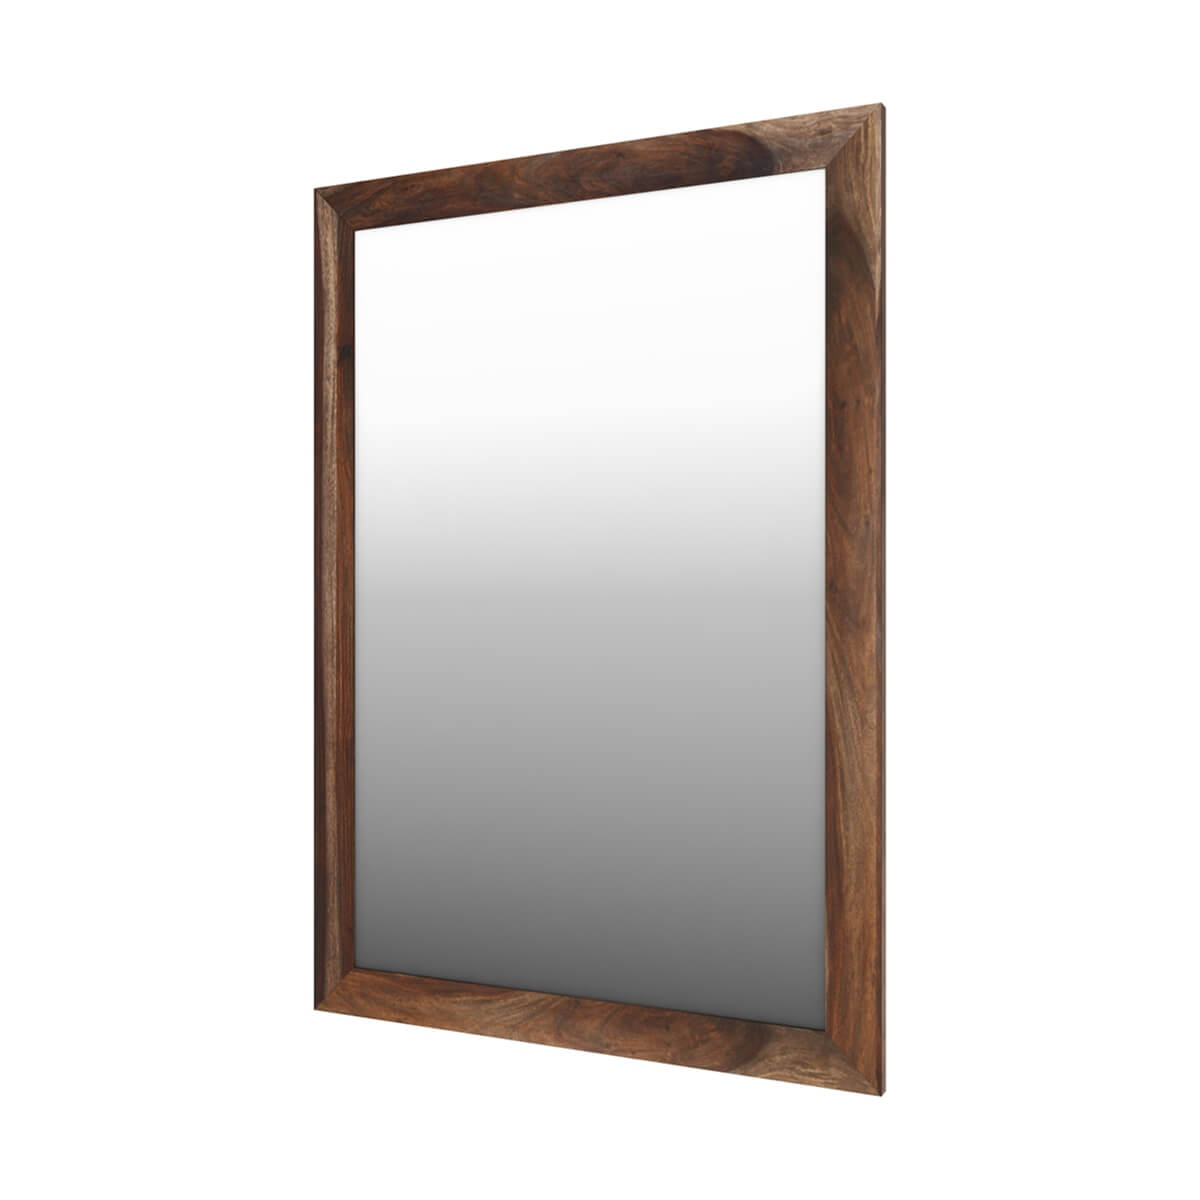 Athena 40 Solid Wood Rustic Mirror Frame